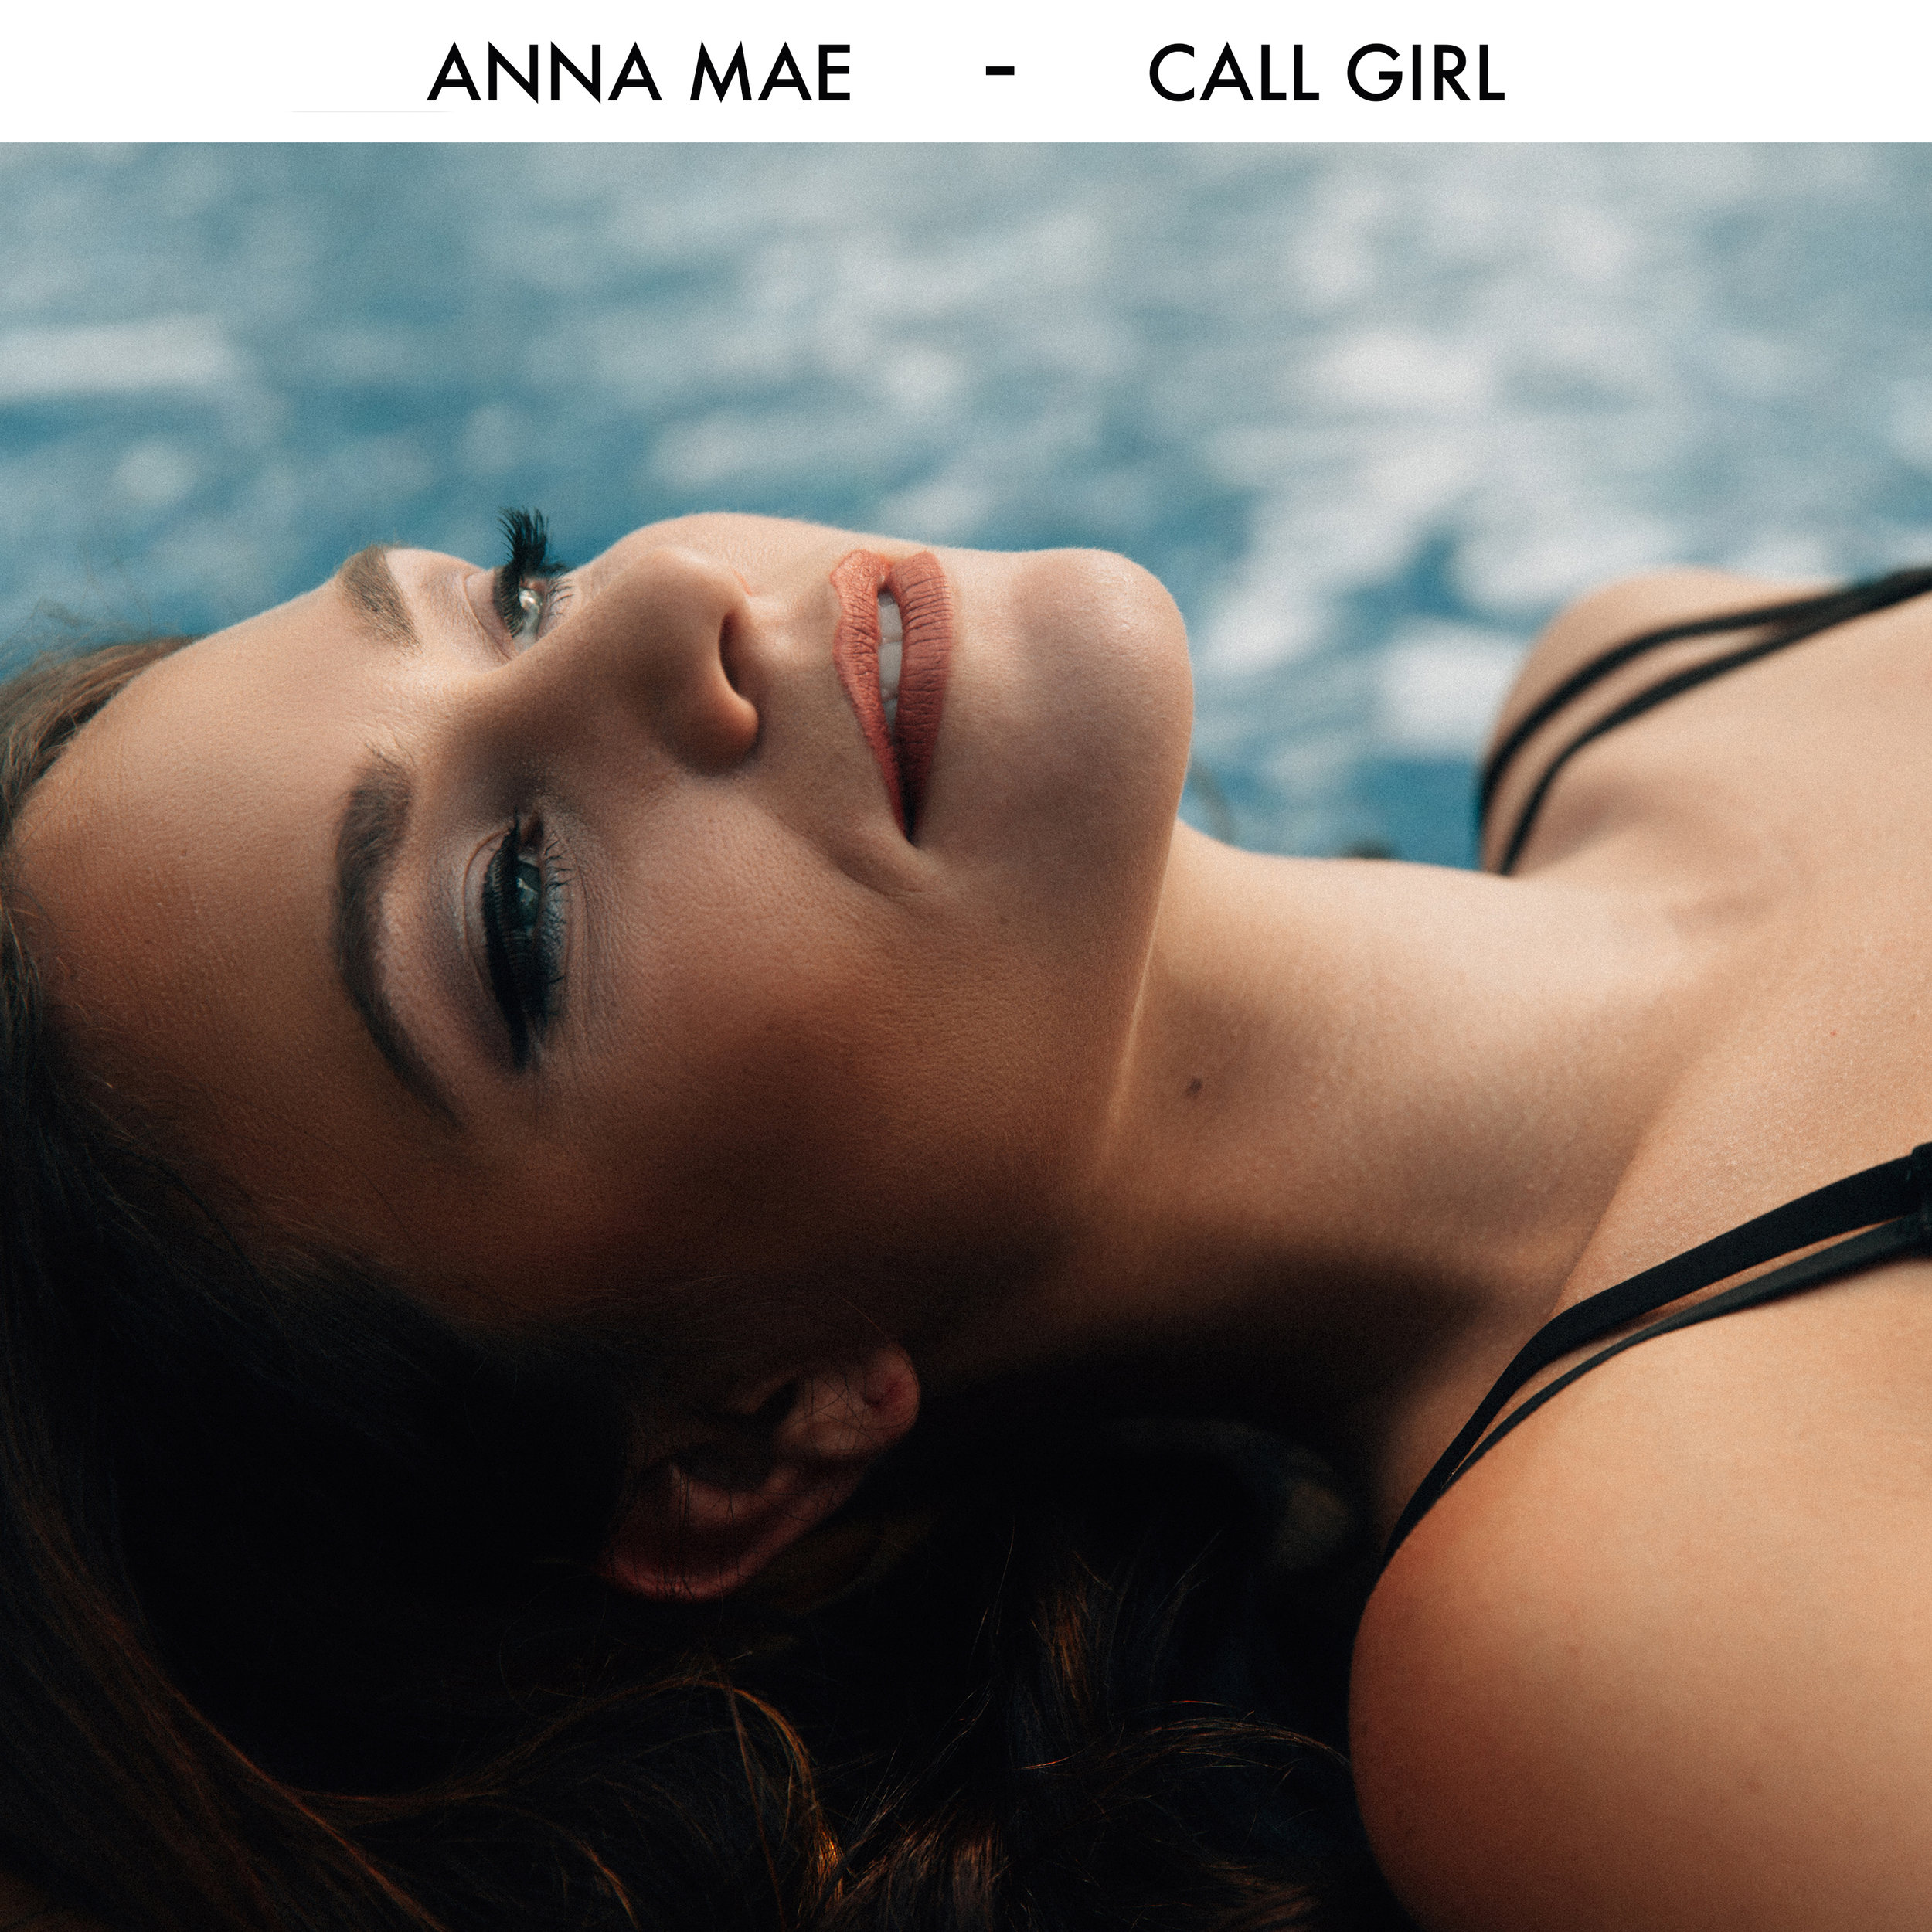 Call Girl Artwork